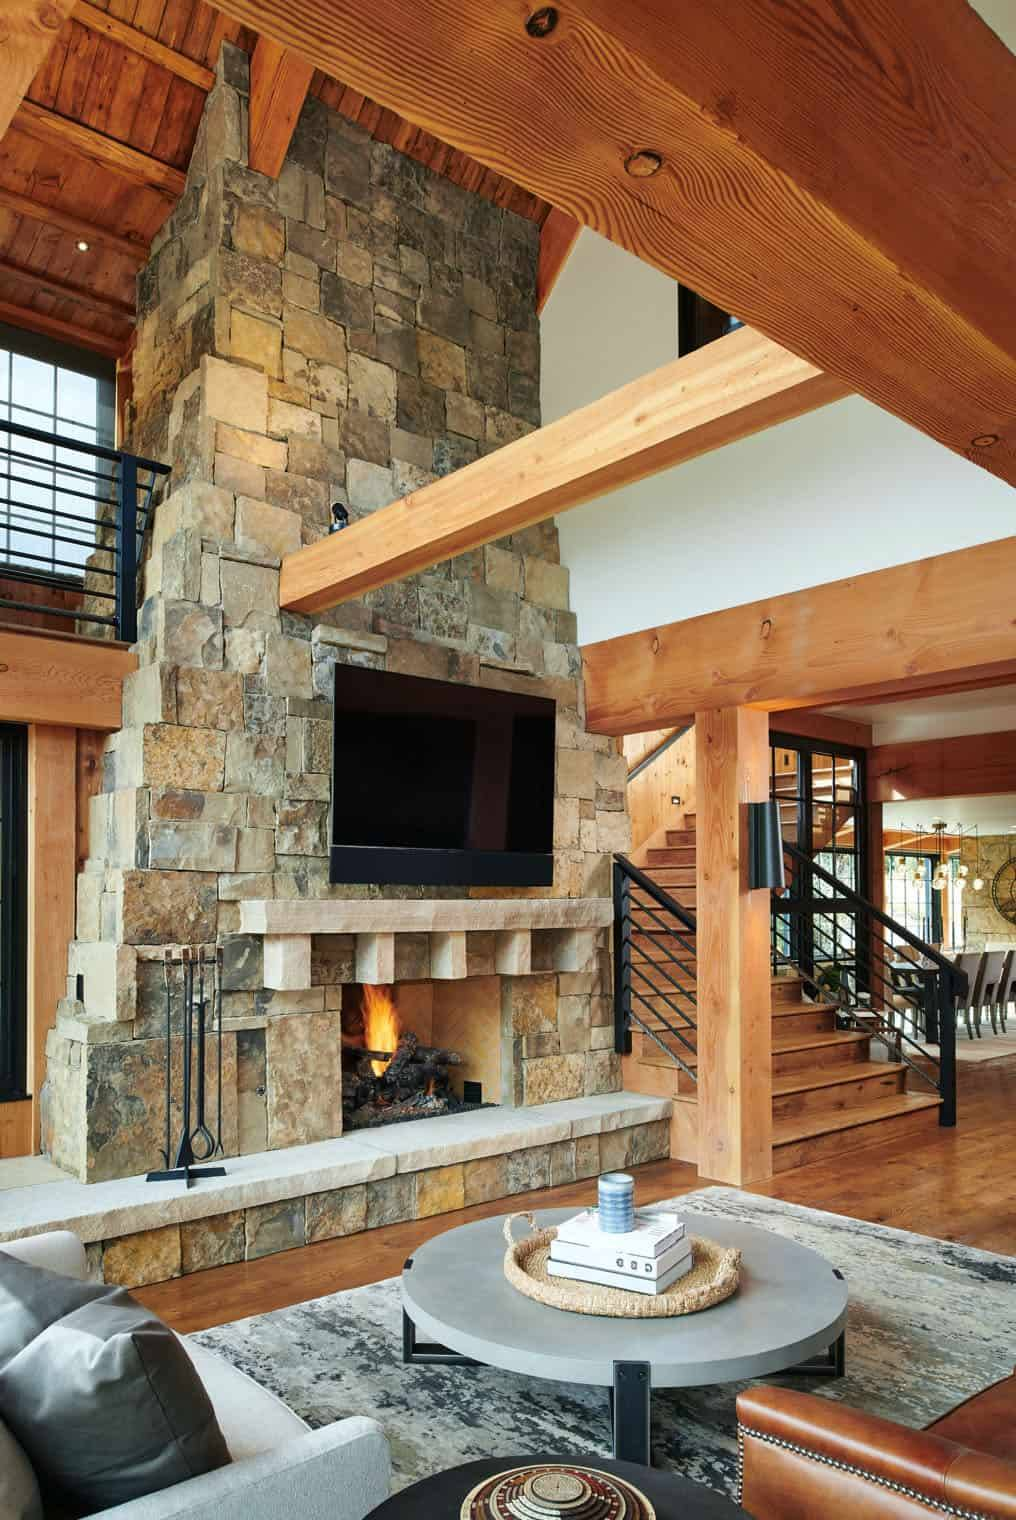 The living room shows off a cool two story stone fireplace, and that is a centerpiece